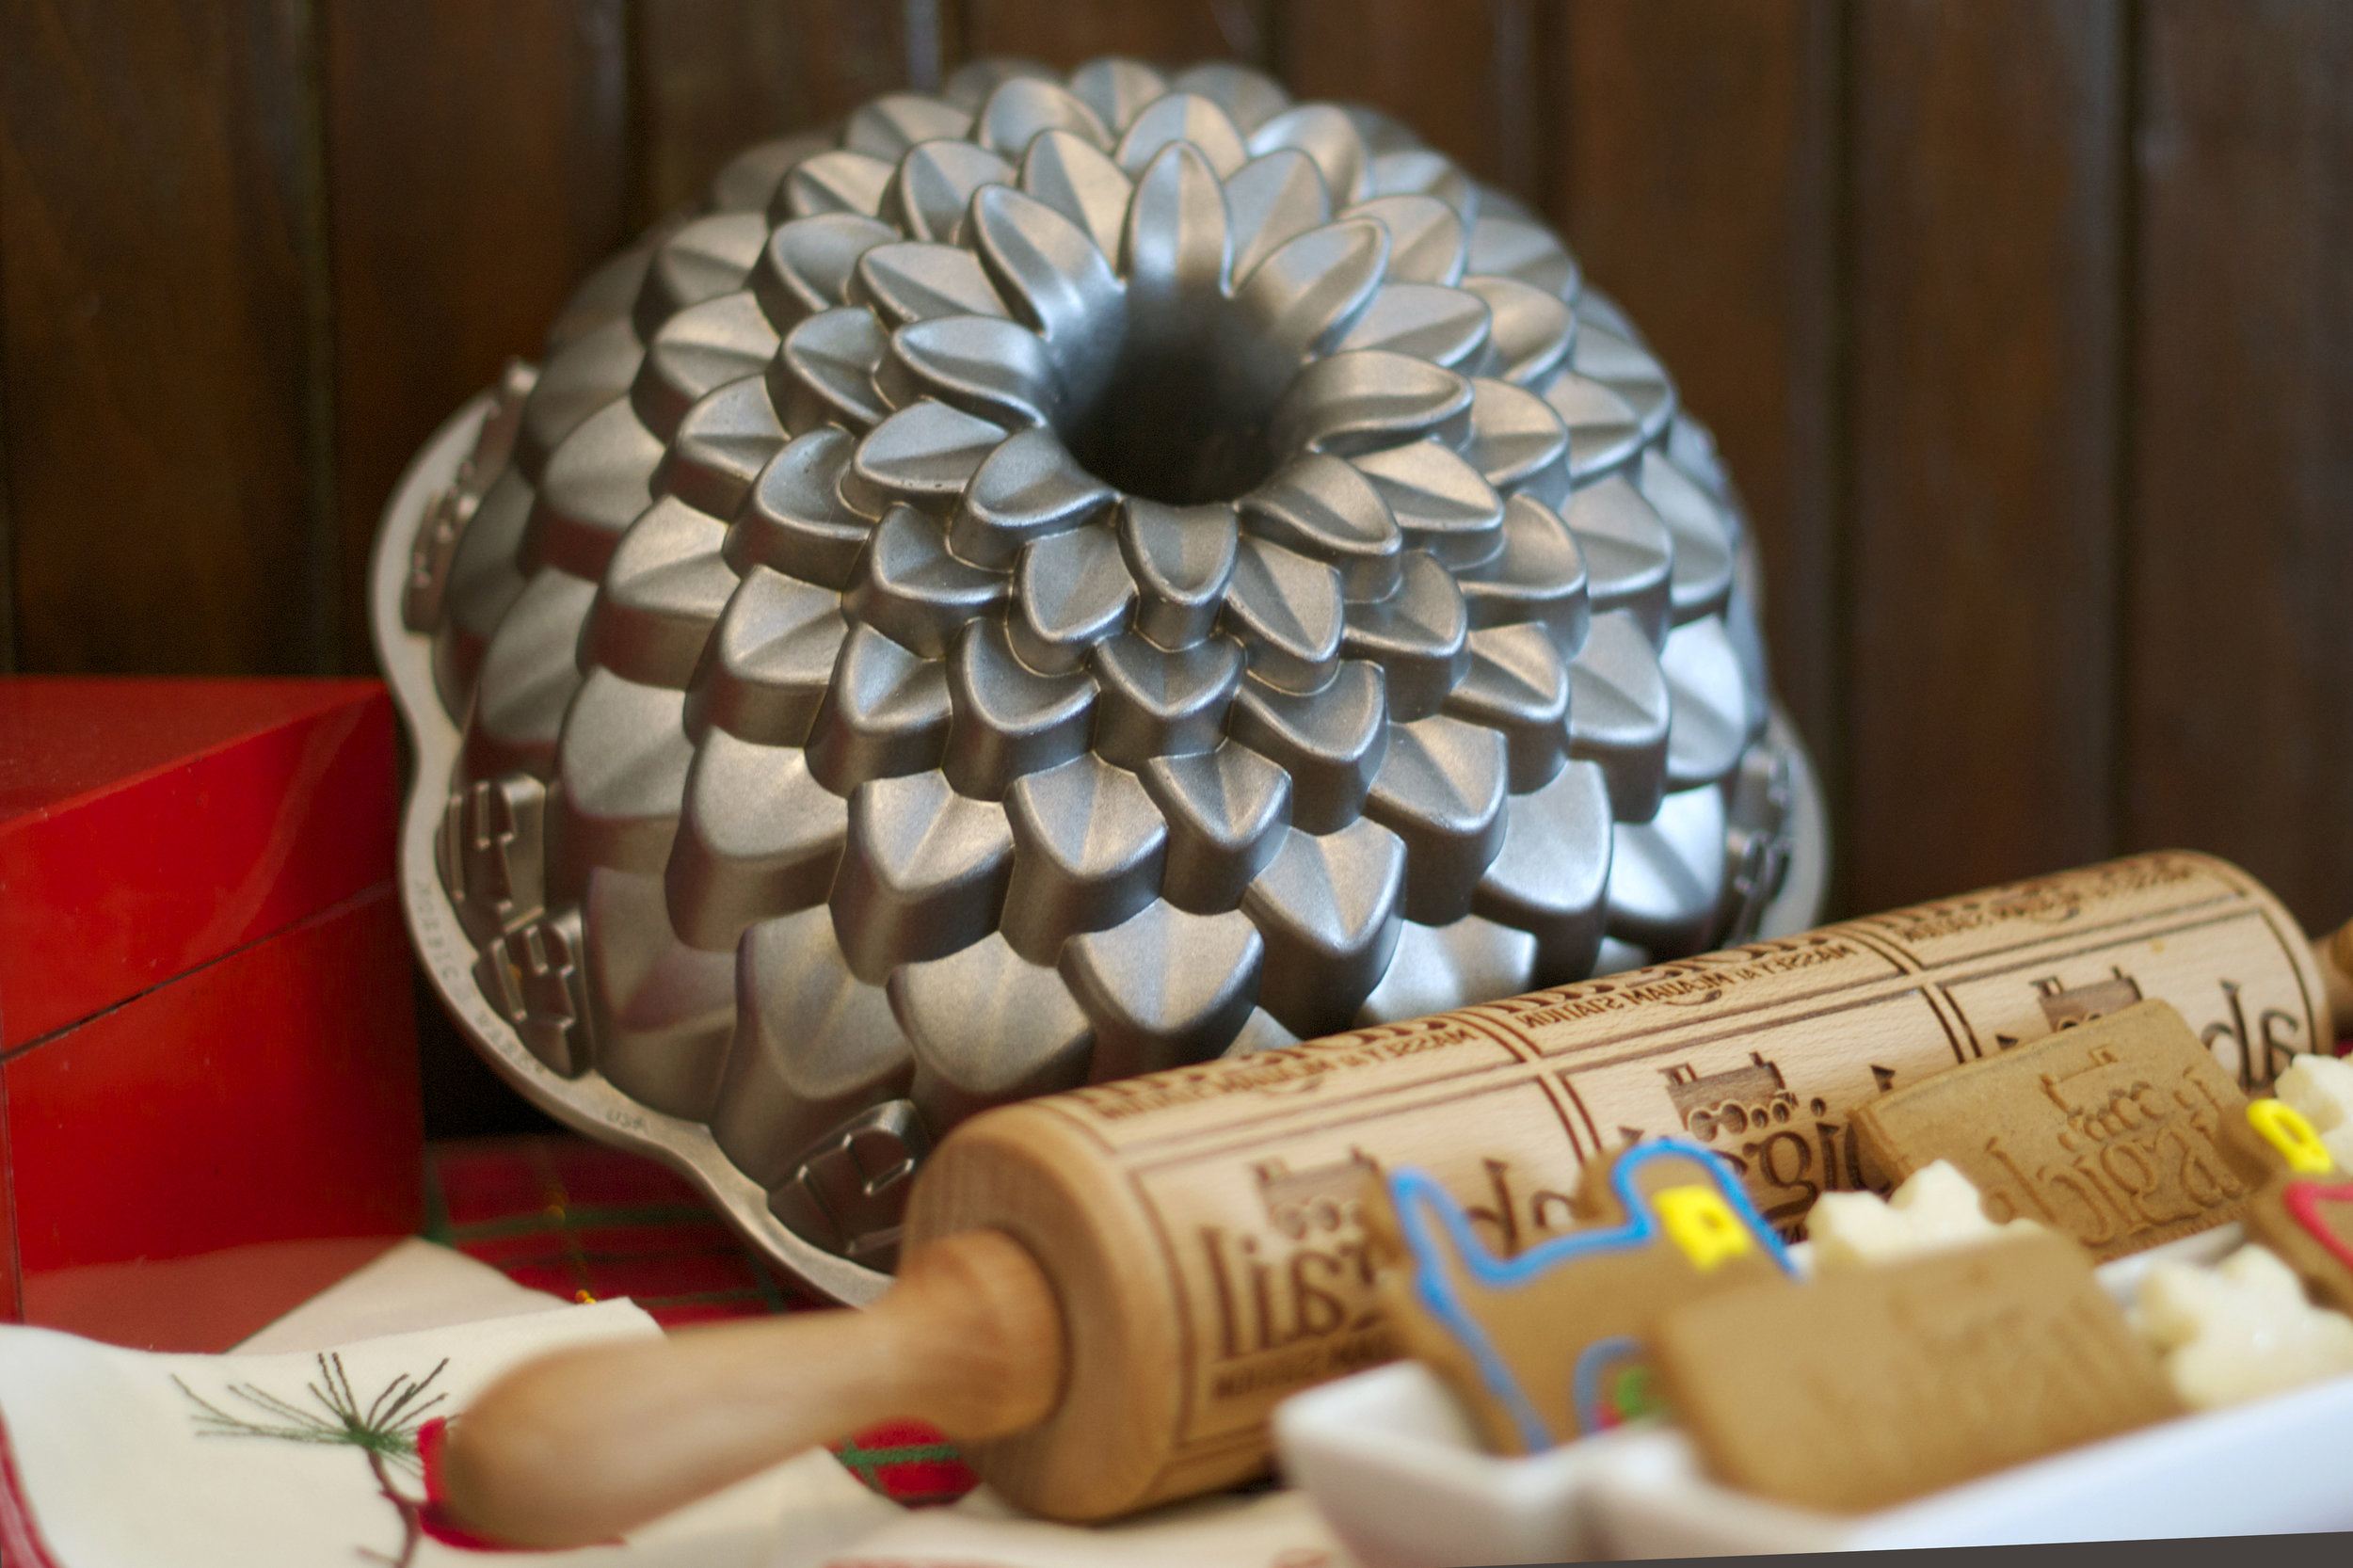 jelly-mold-and-cookie-print-rolling-pin.jpg